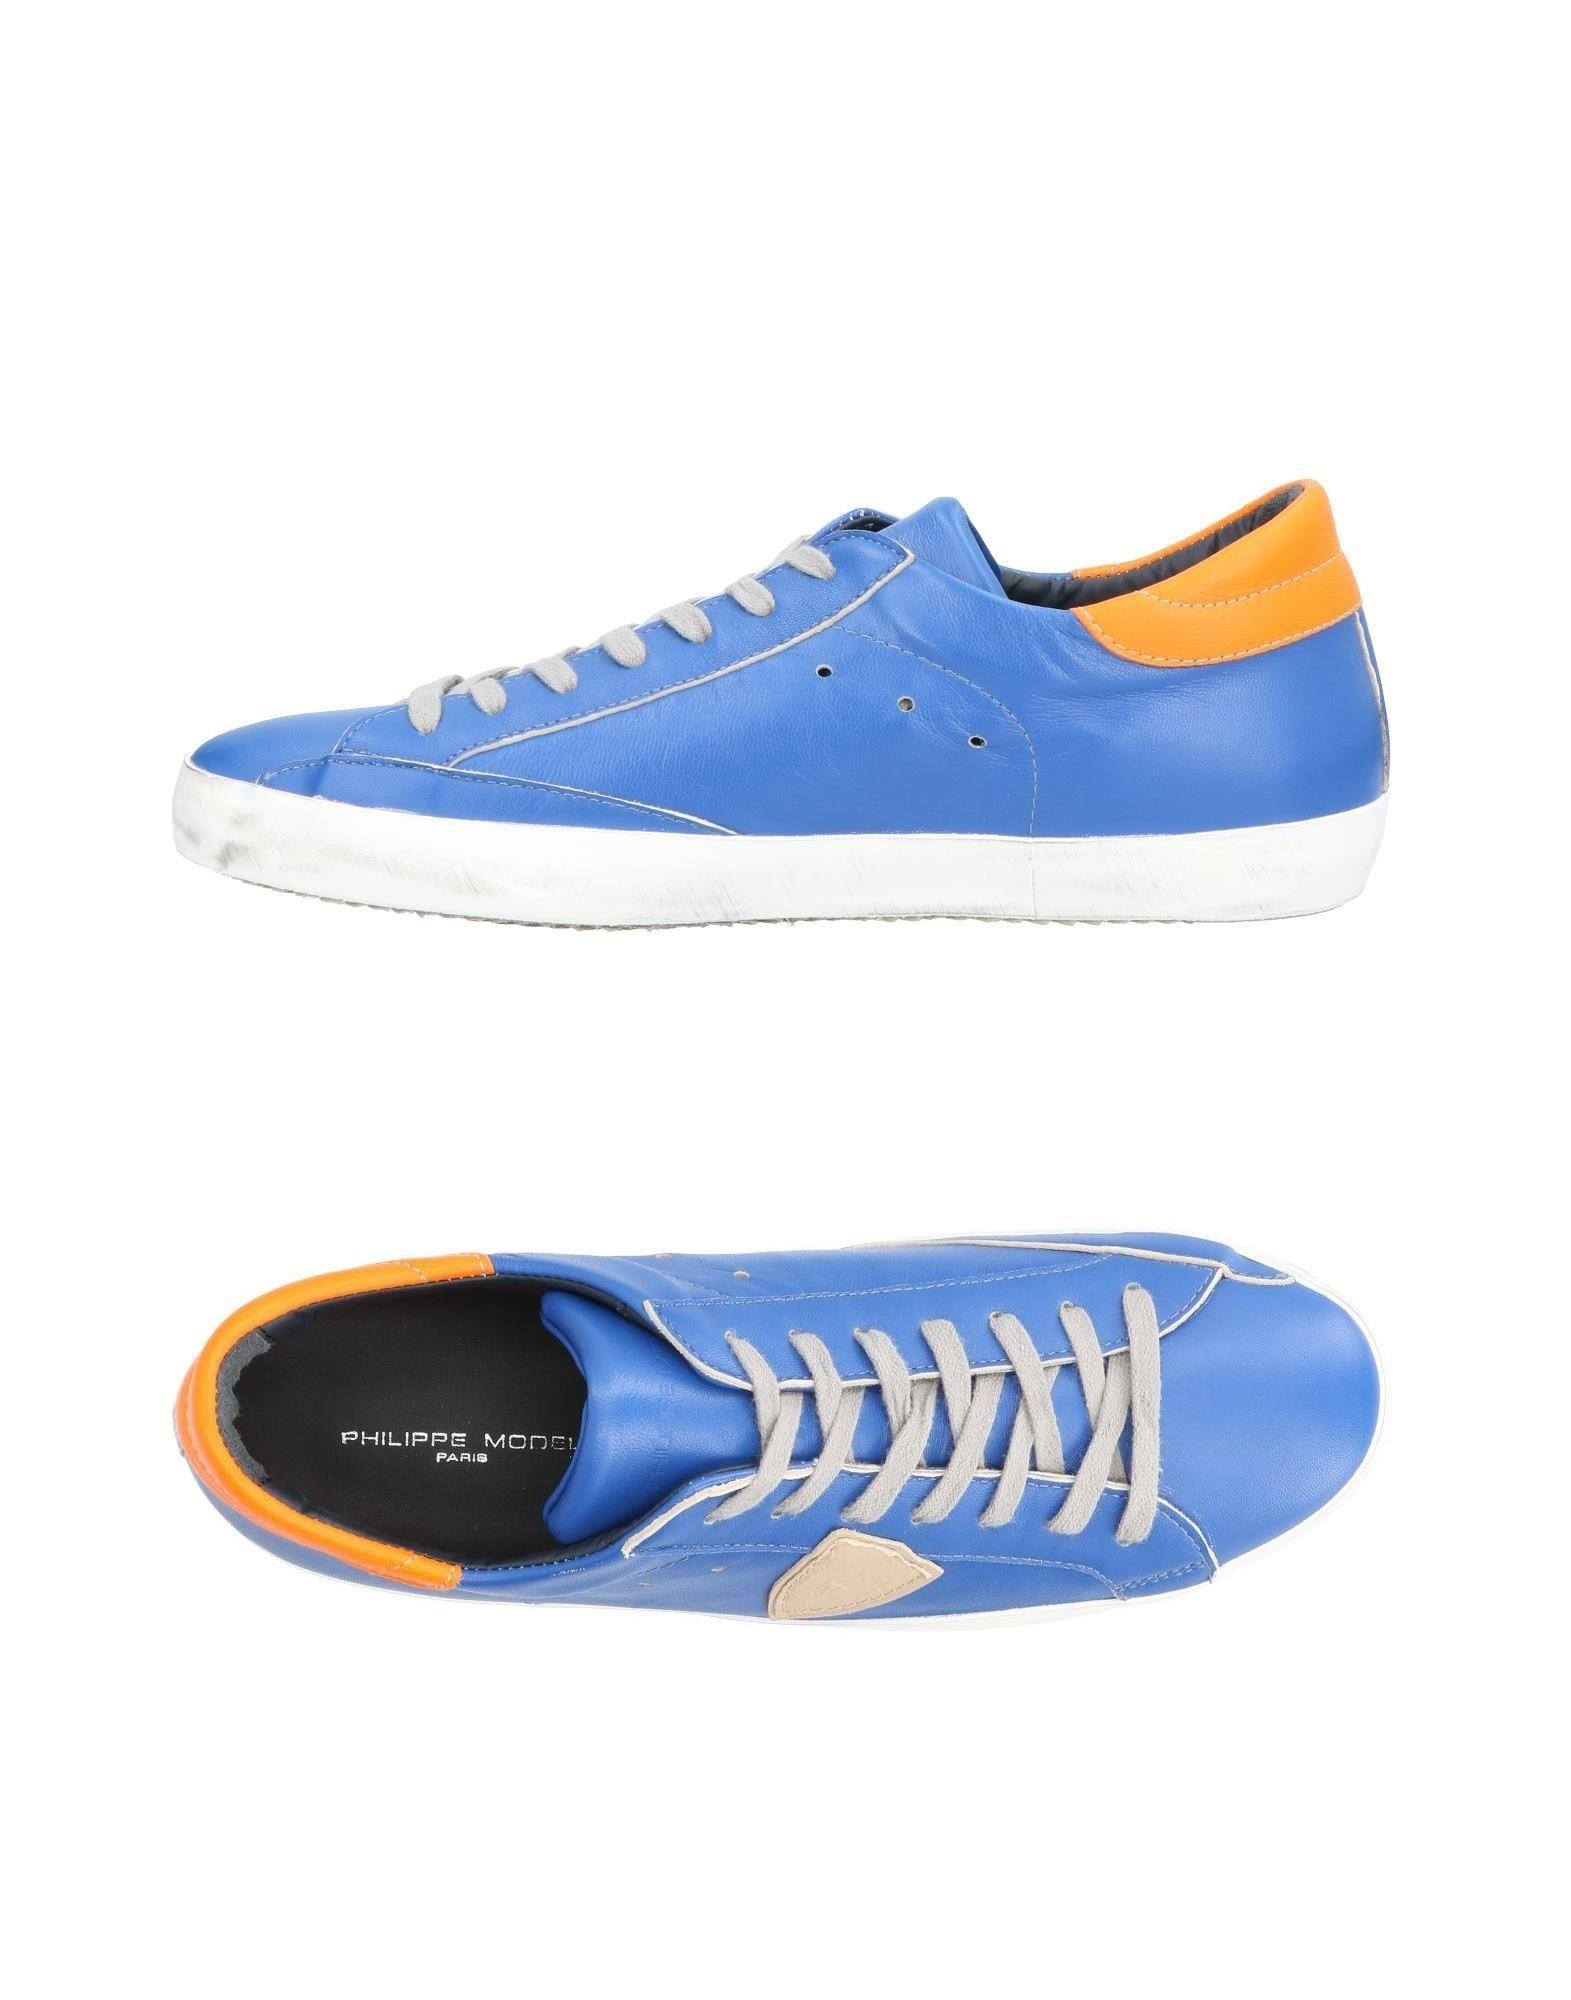 Philippe Model Sneakers In Bright Blue